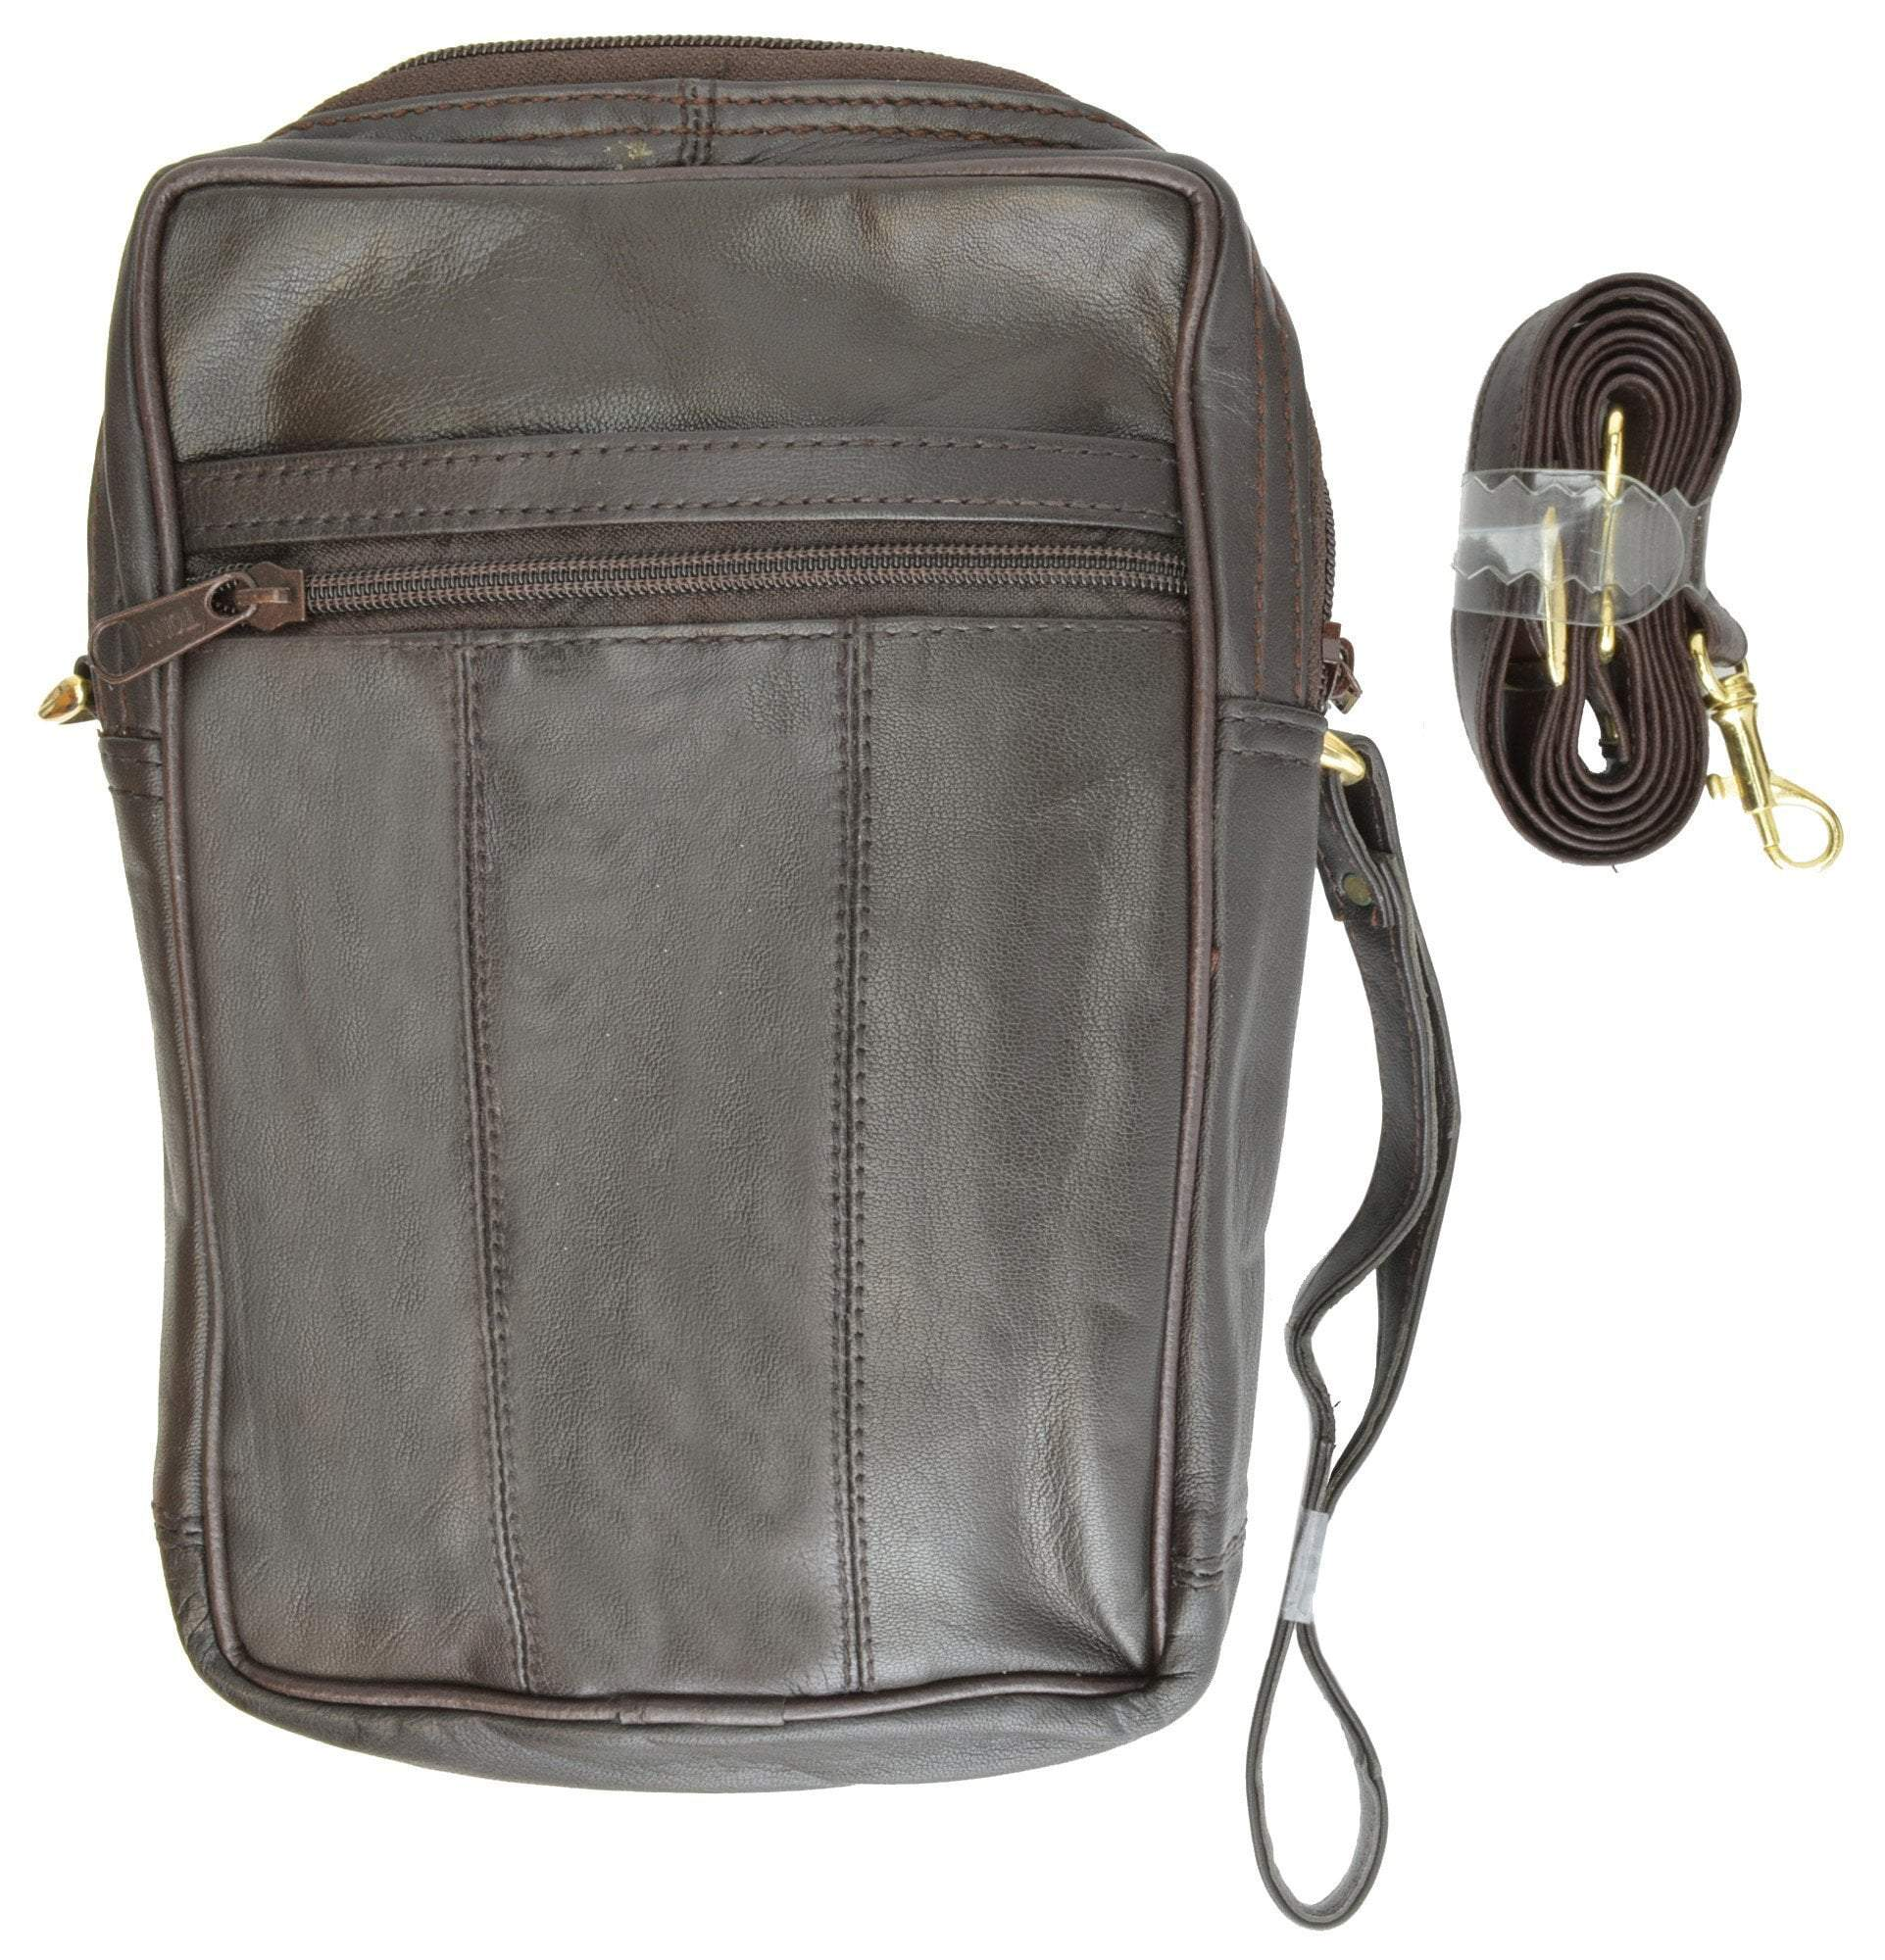 clear and distinctive new arrival top-rated latest Mens Womens Genuine Leather Organizer Pouch Bag w/Strap 104 (C)